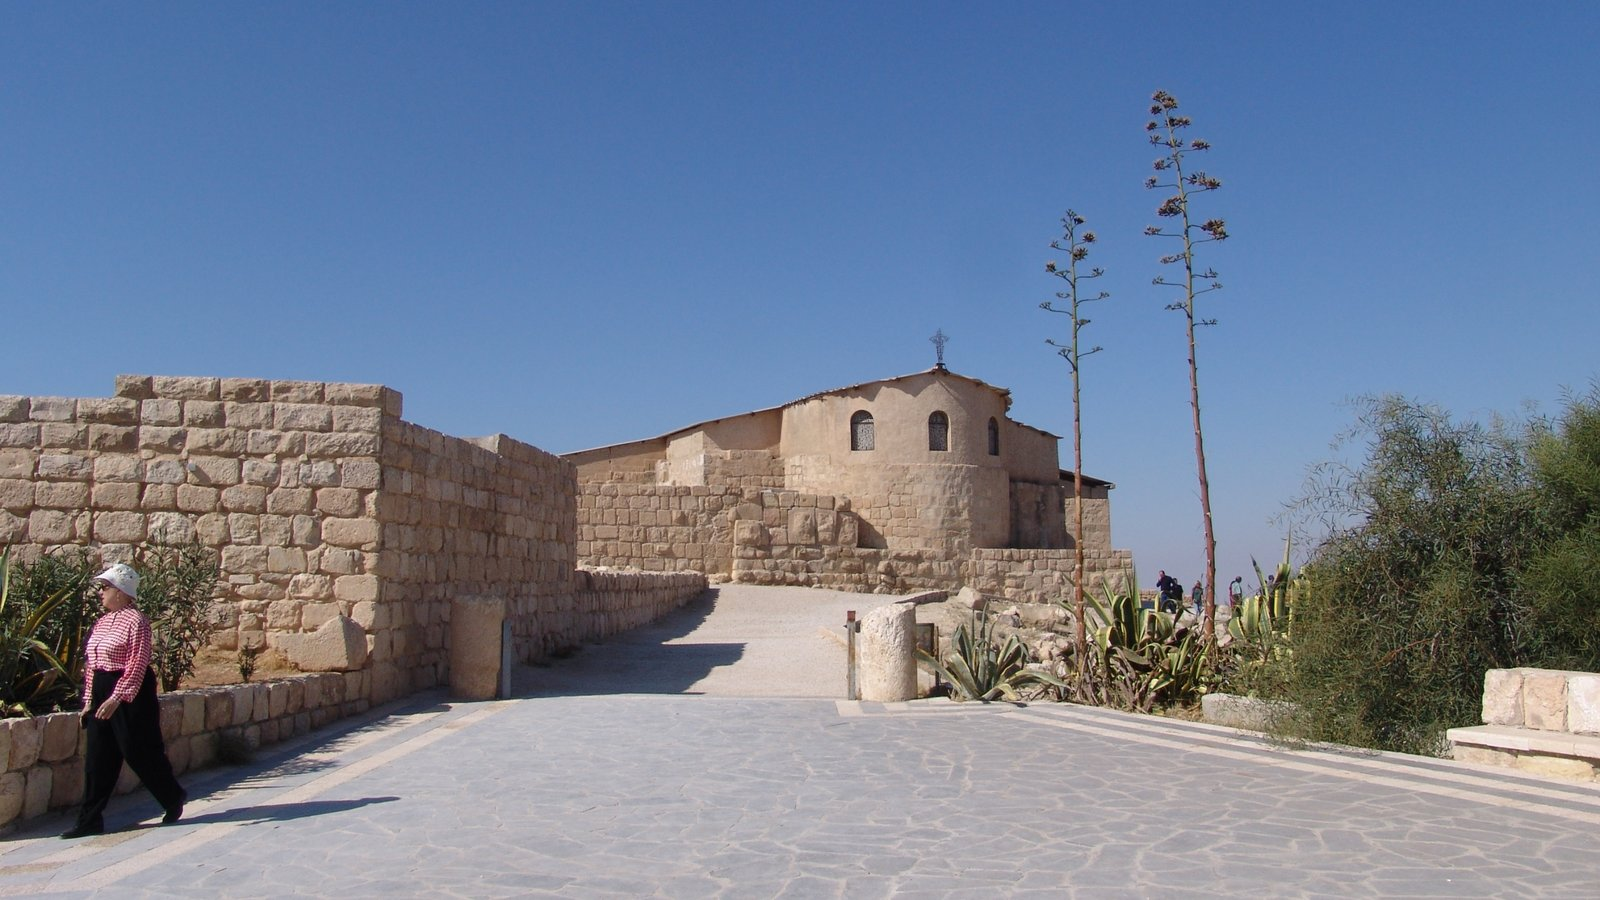 Mount Nebo which includes a church or cathedral and heritage architecture as well as an individual femail